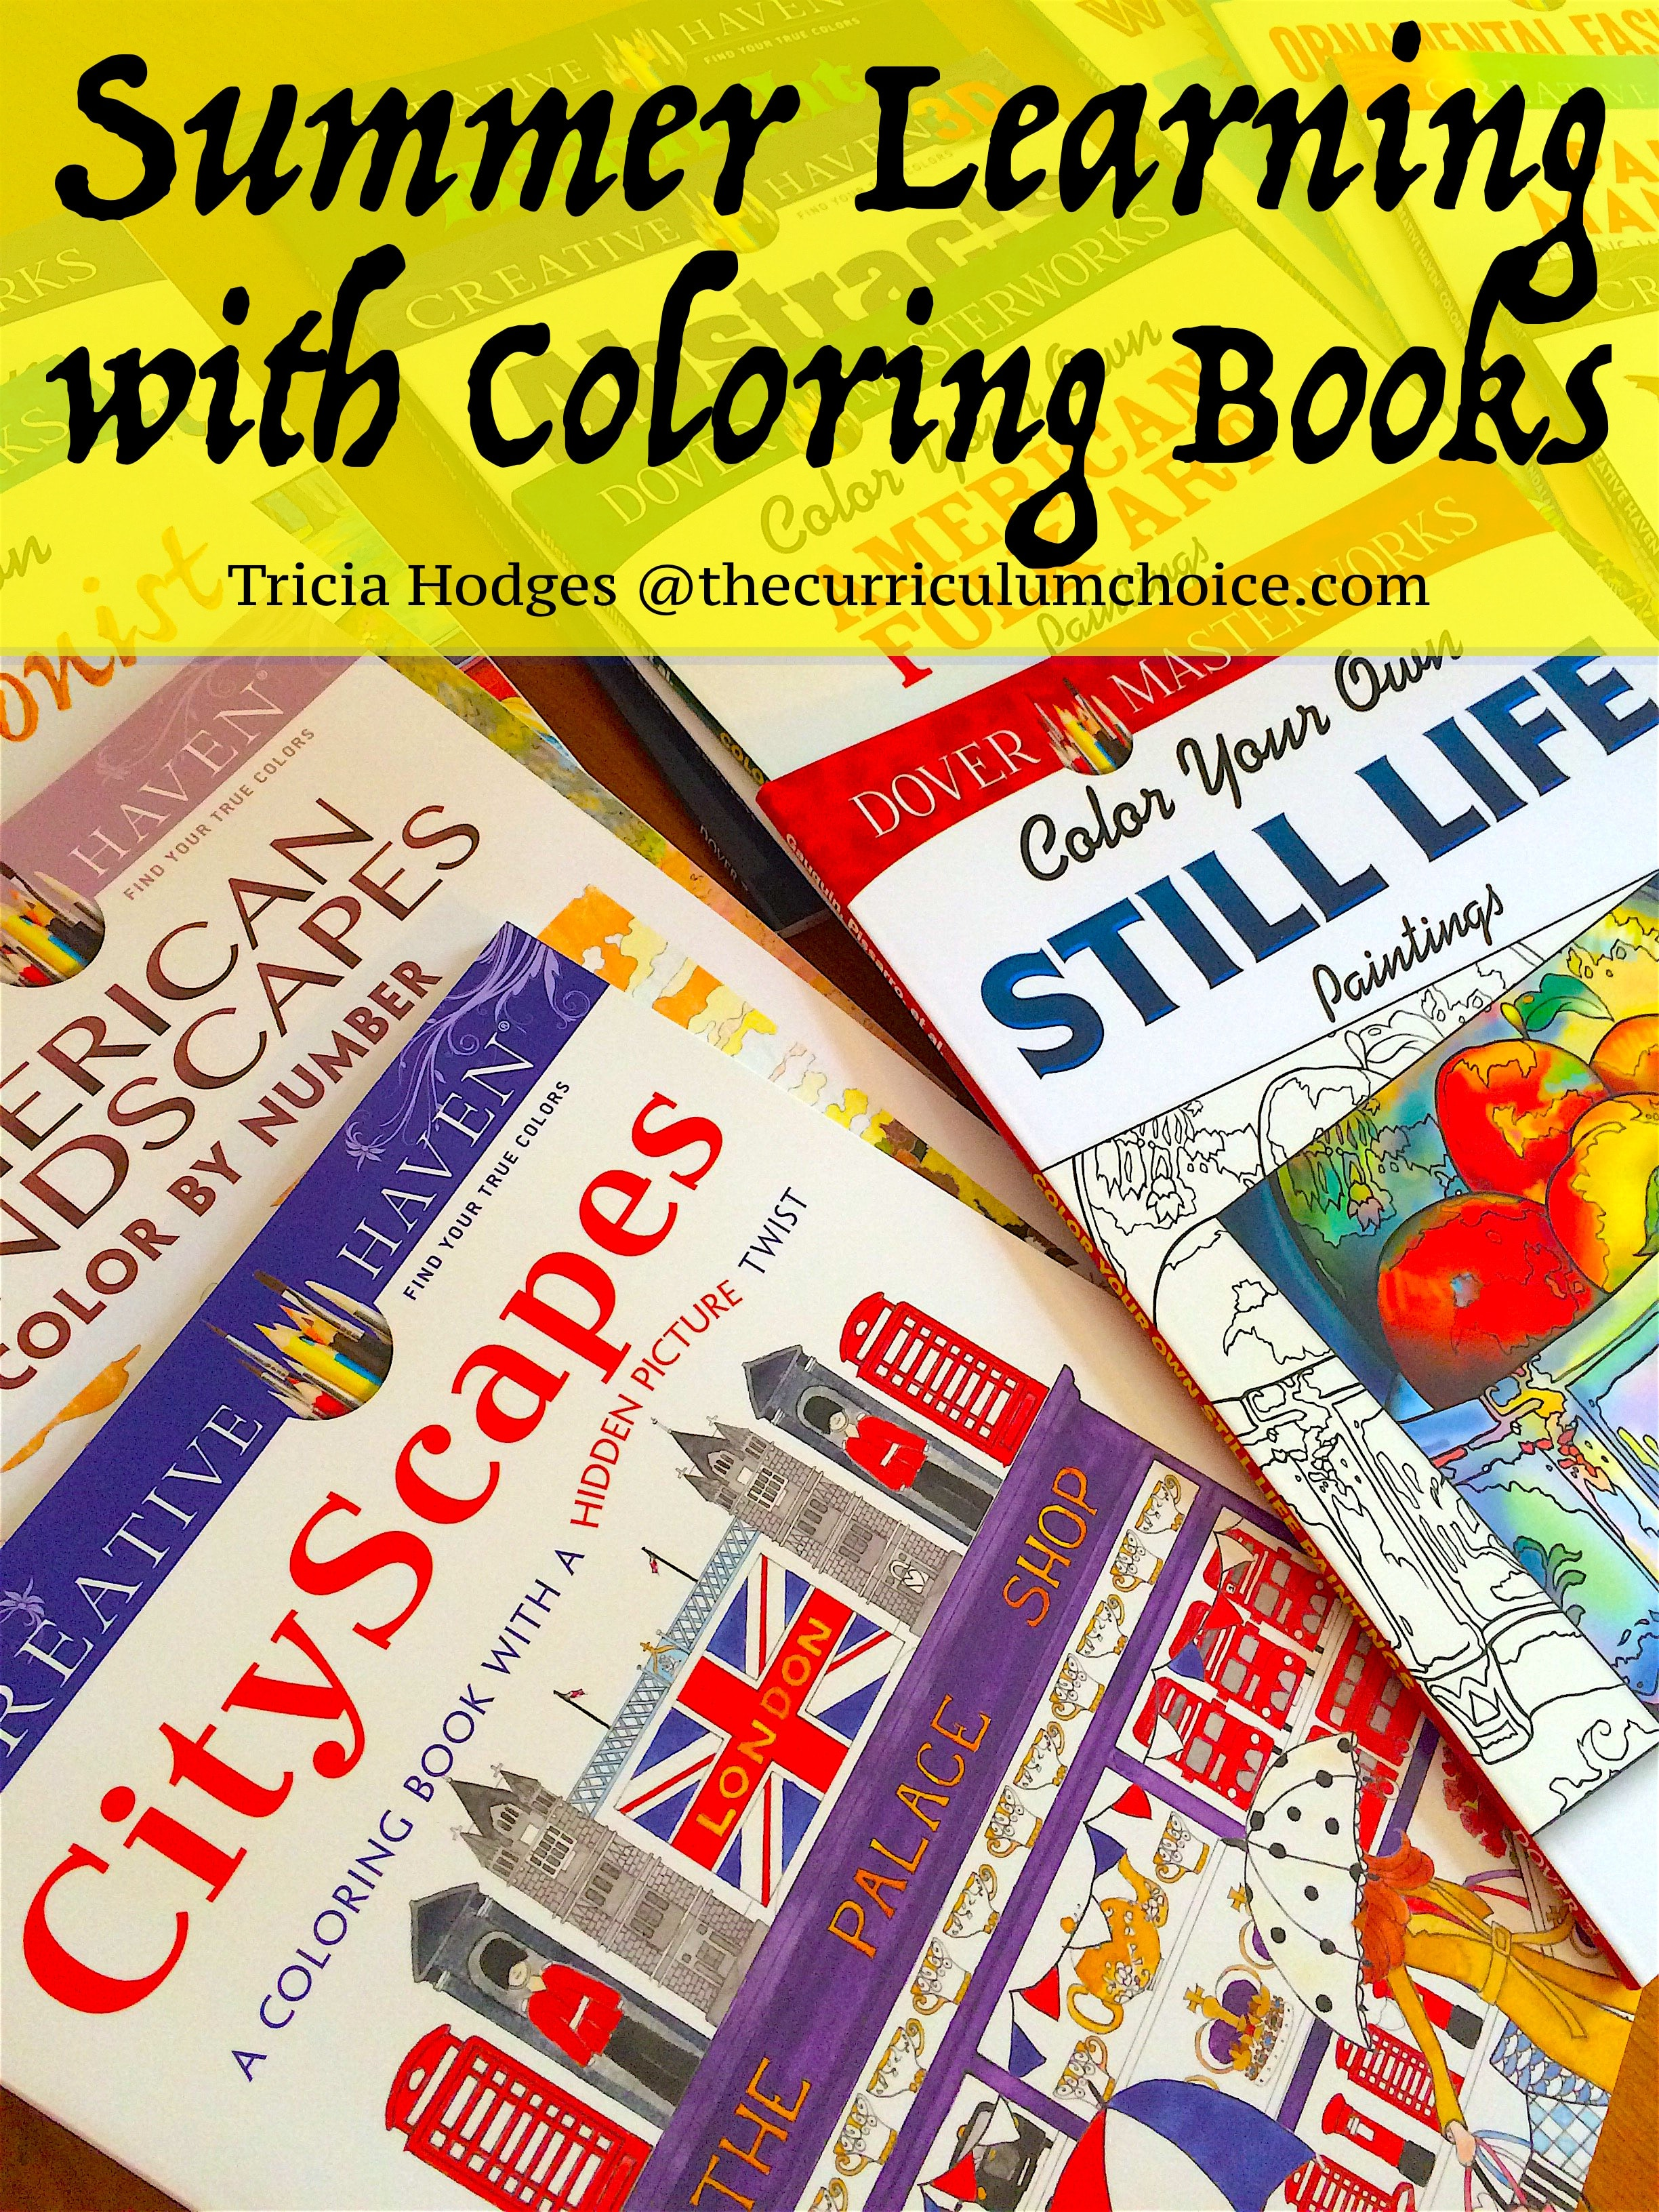 Summer Learning with Coloring Books - The Curriculum Choice